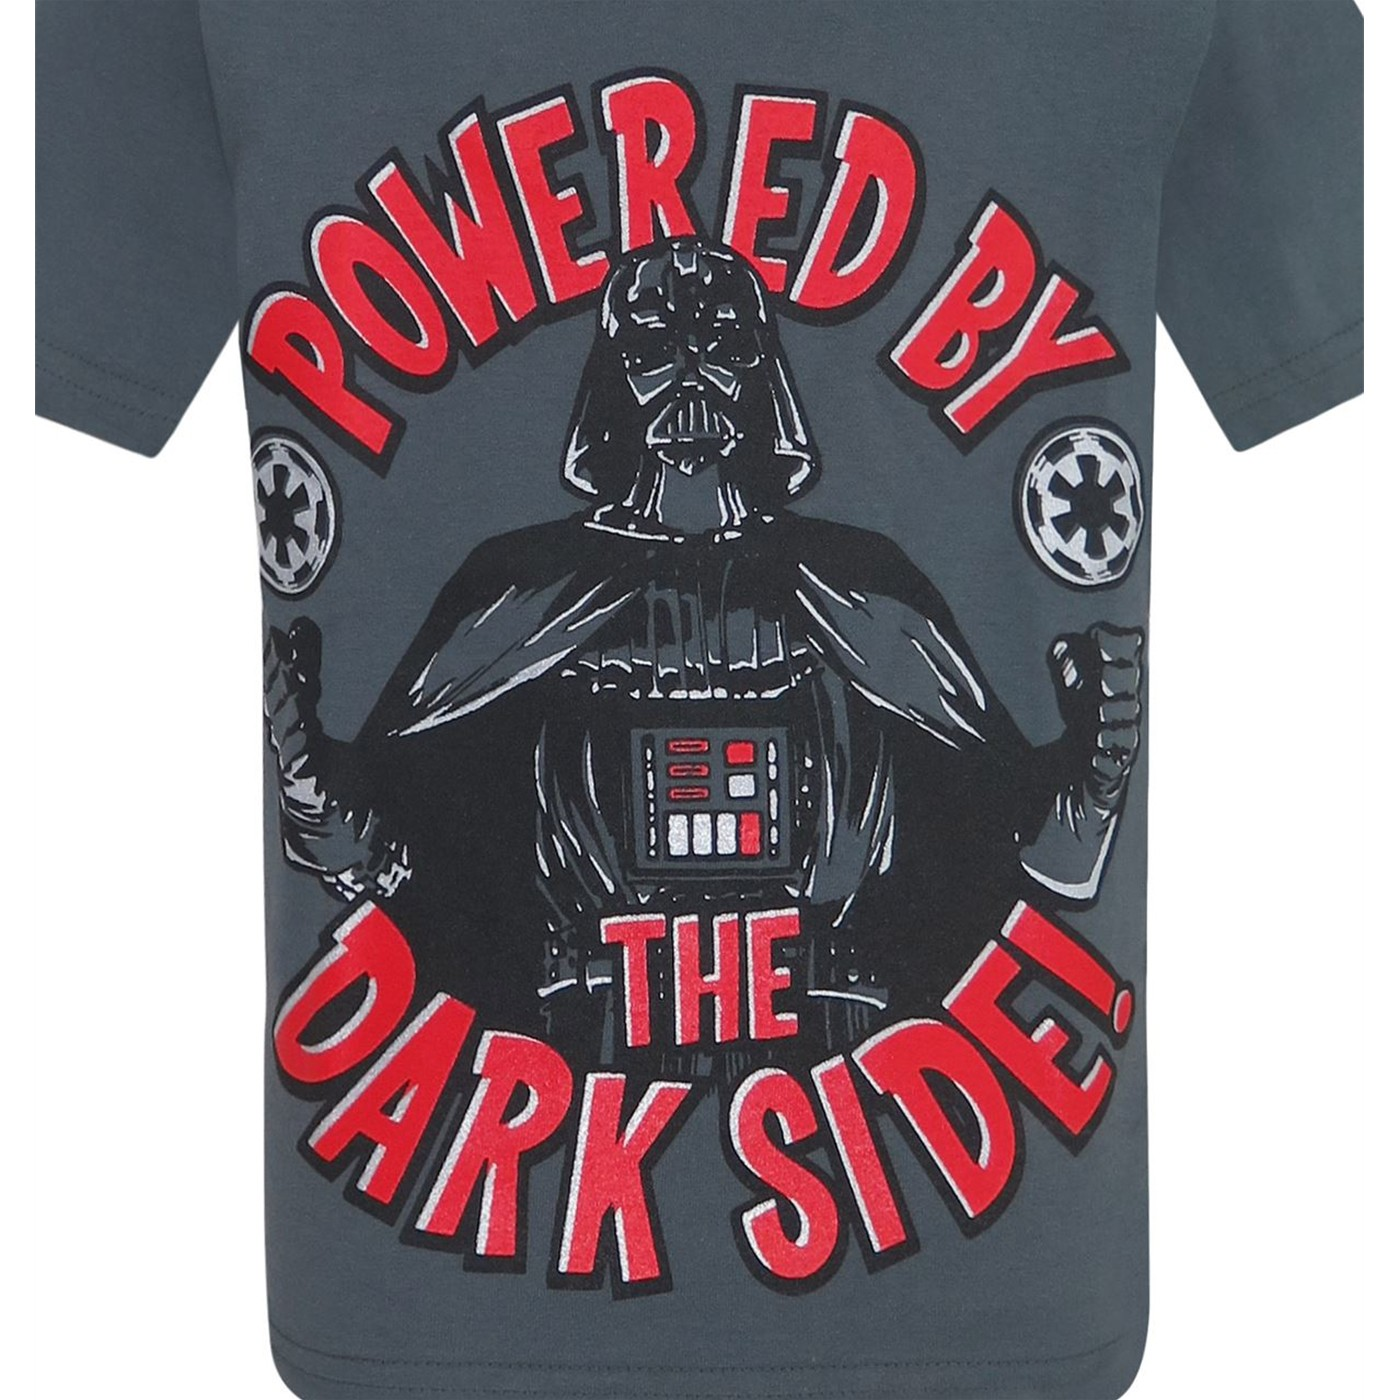 Star Wars Powered By The Darkside Kids T-Shirt